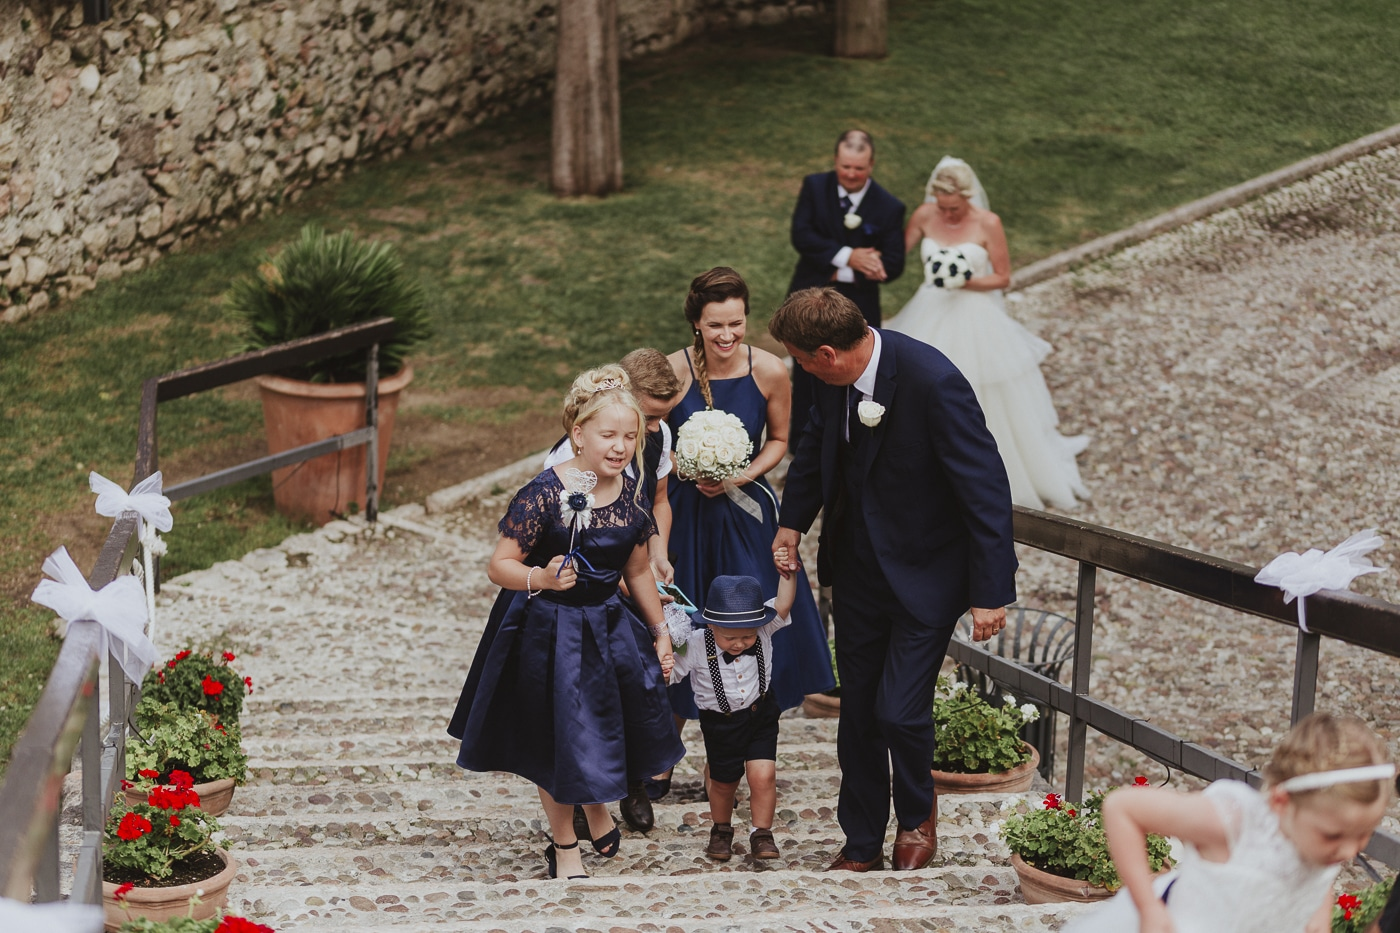 Bridesmaids and small boy in hat walk up the stone steps in front of bride and groom